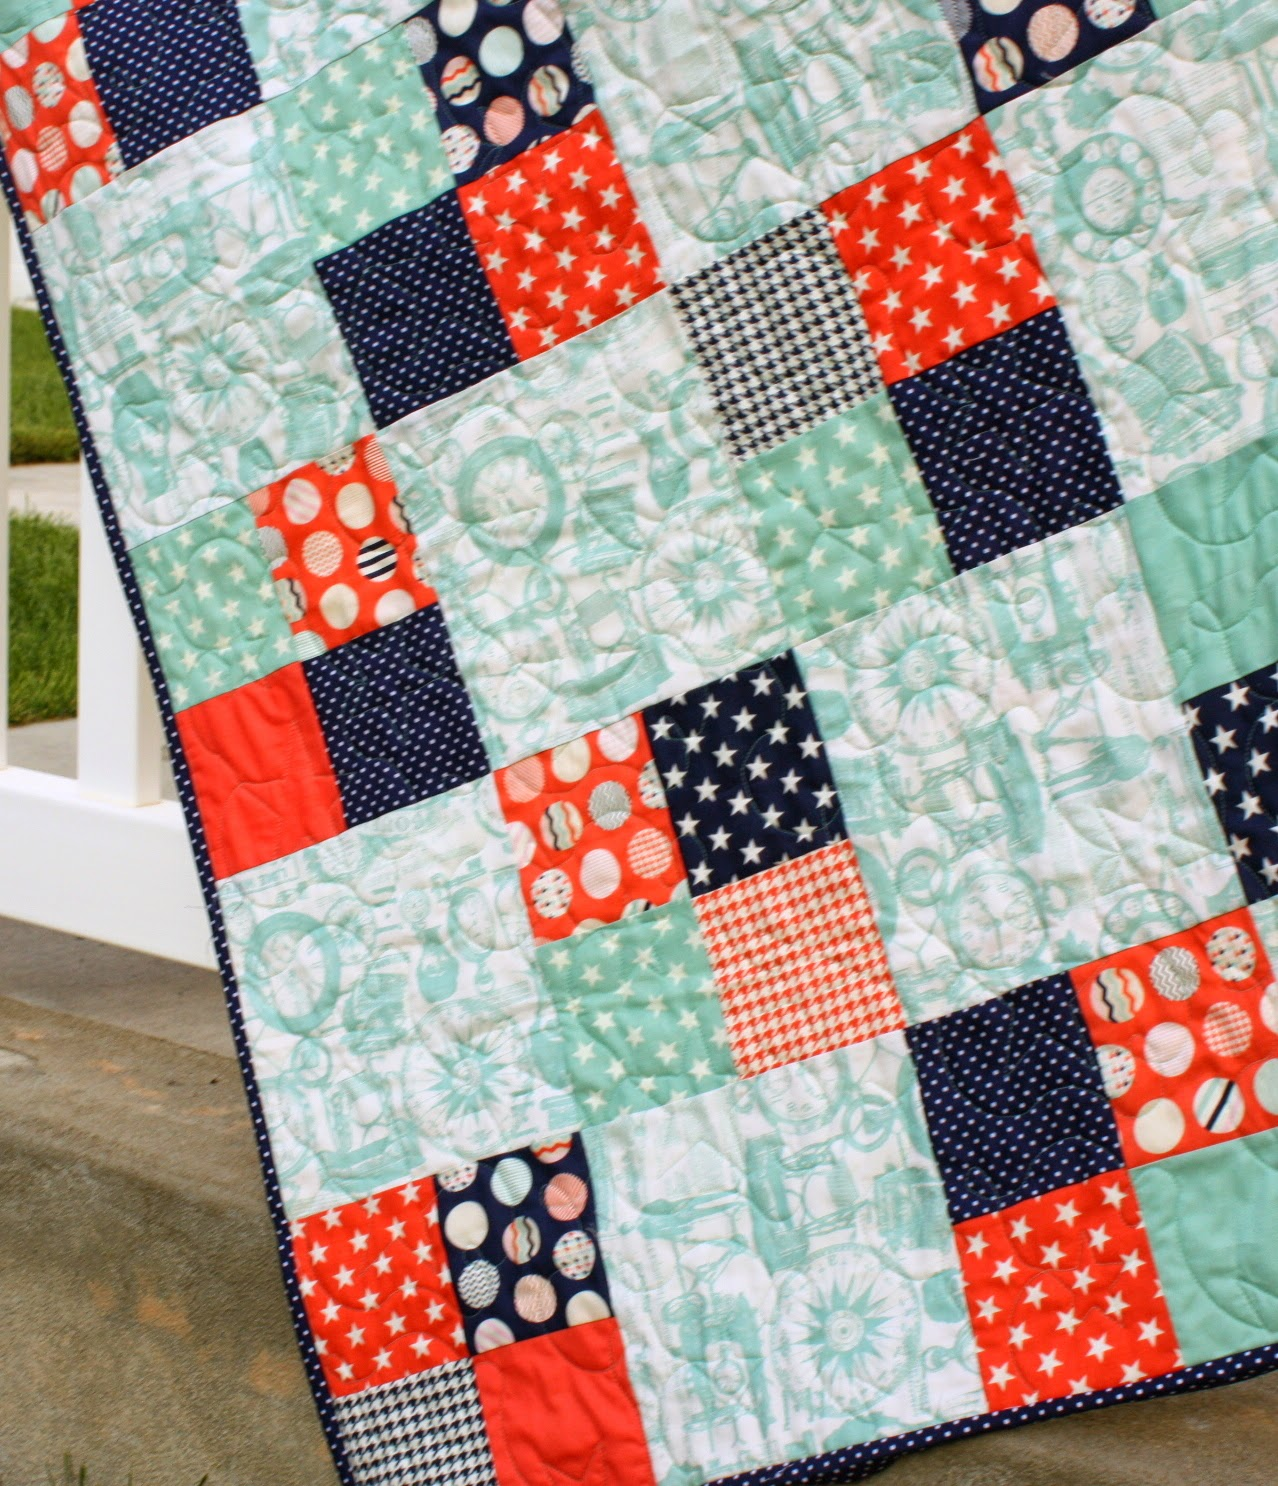 It's just a picture of Vibrant Printable Quilt Patterns